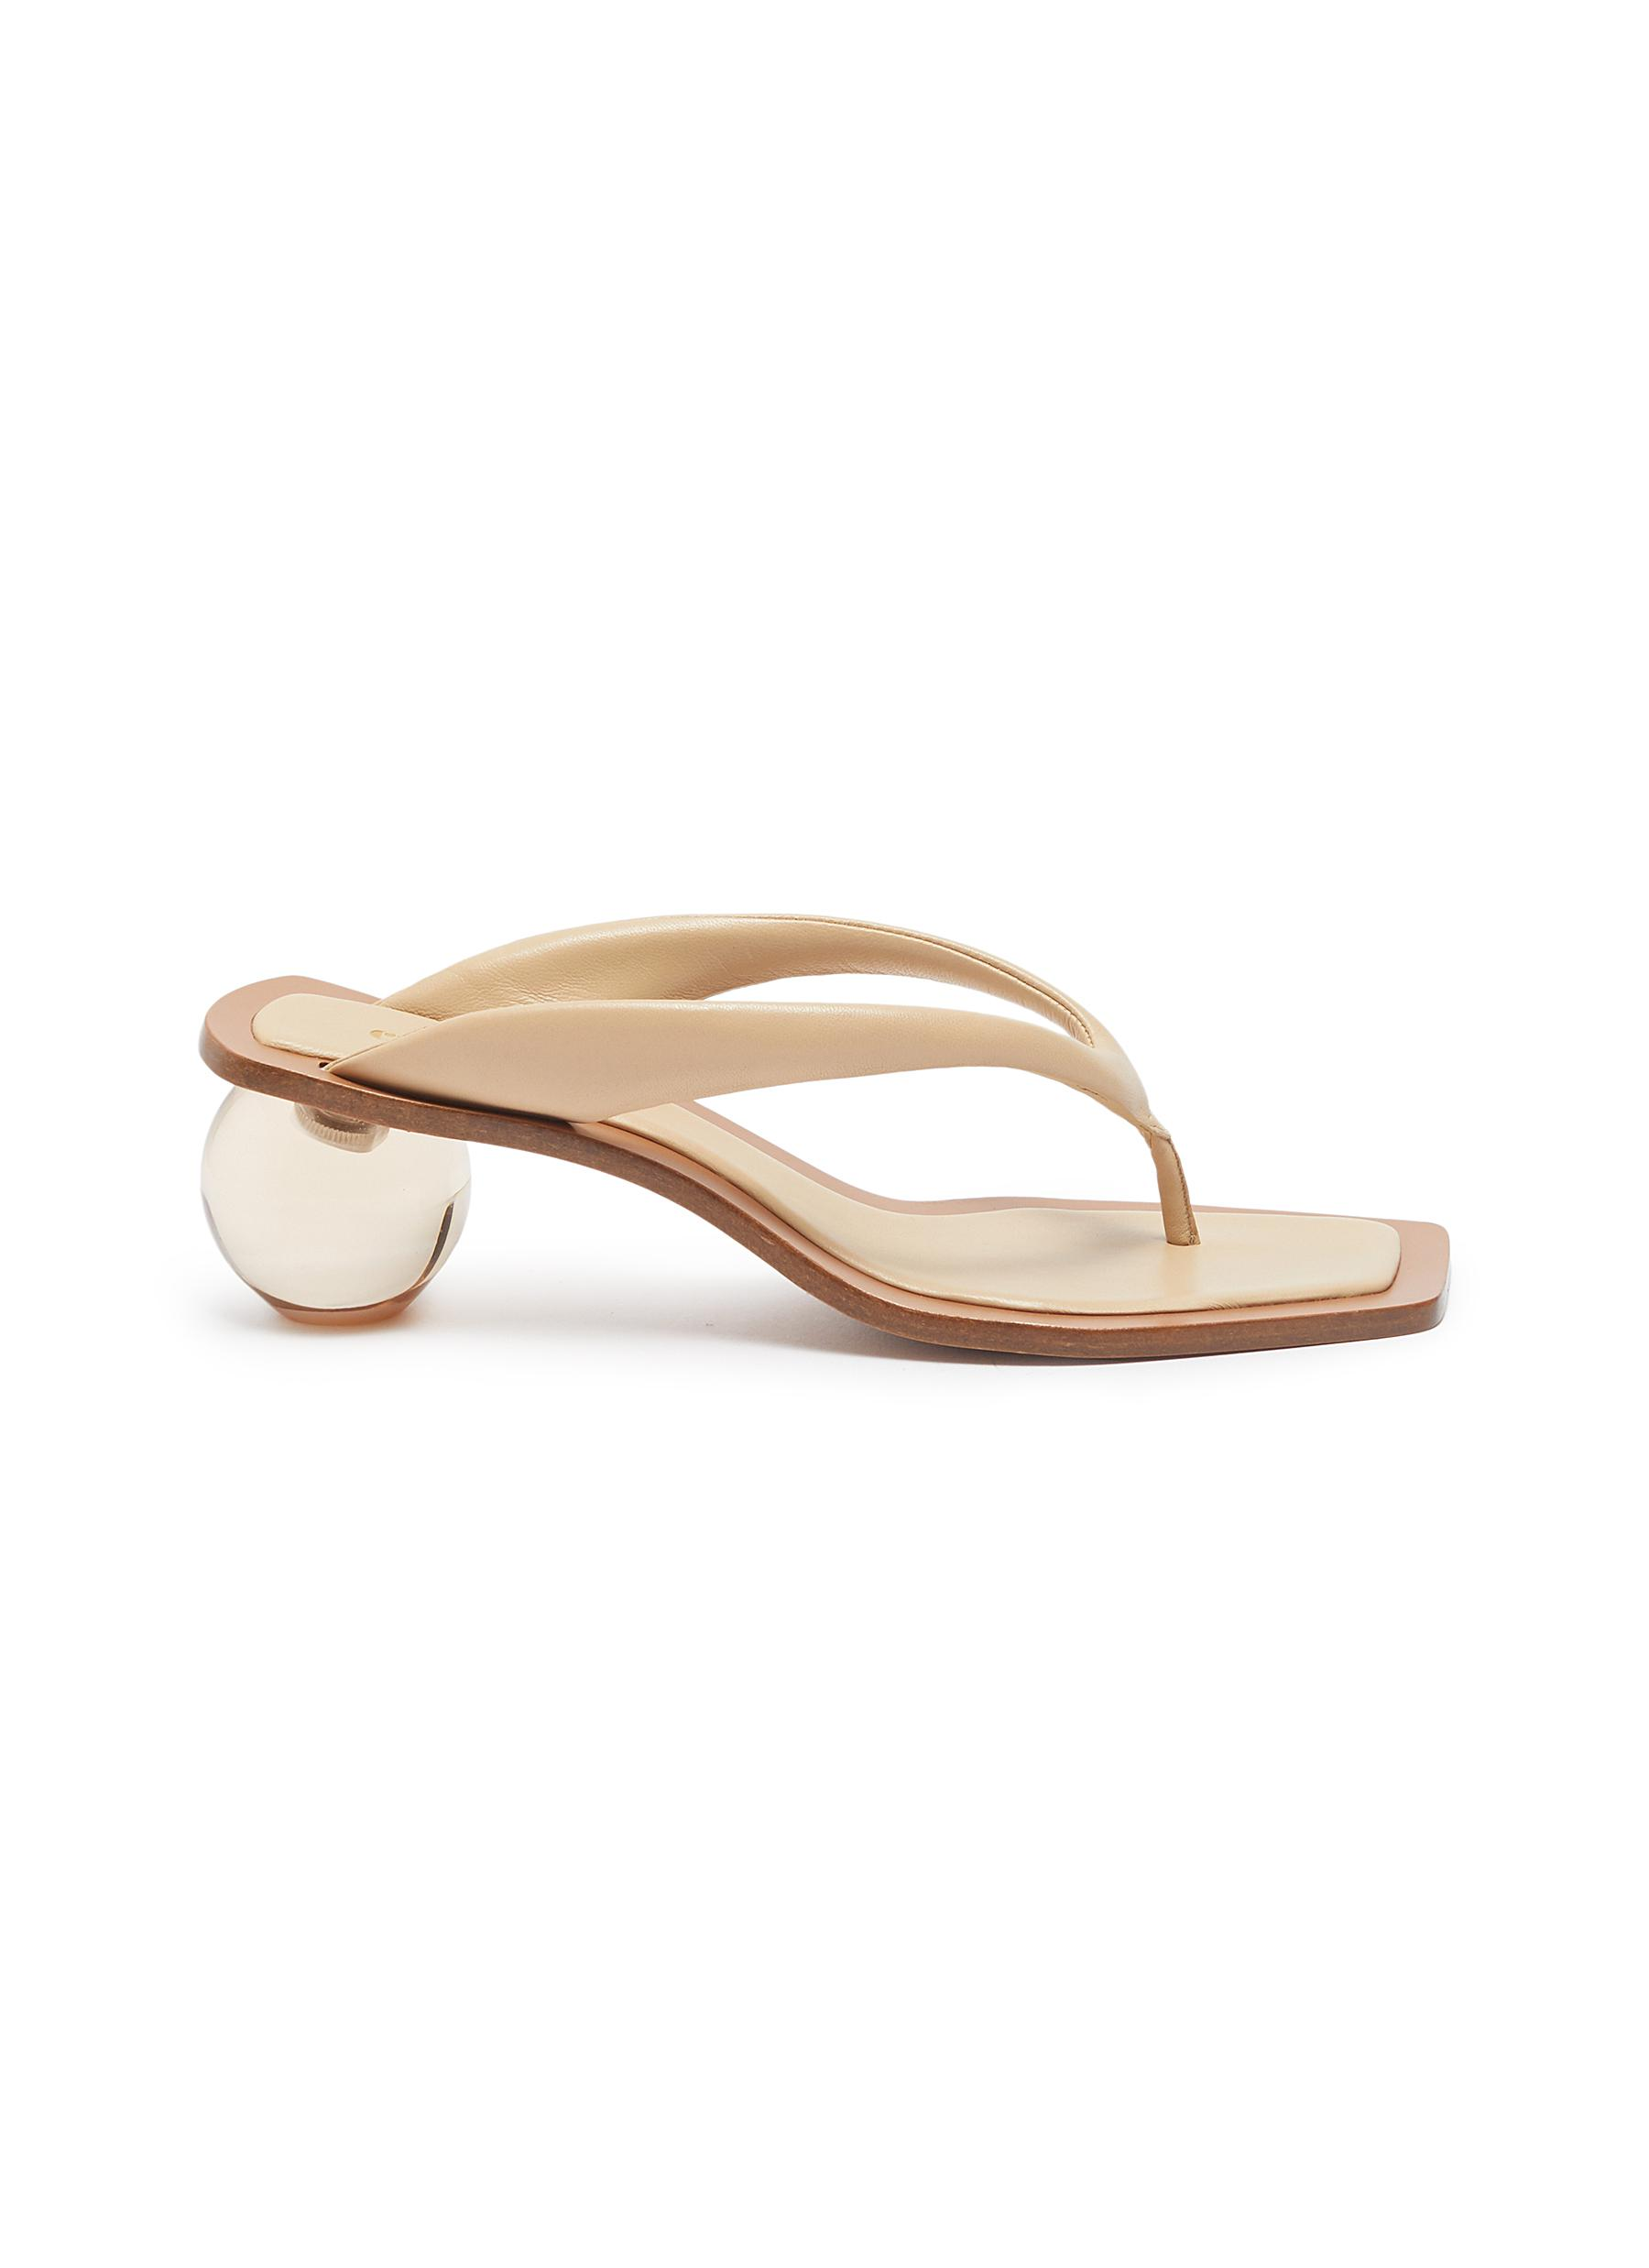 Jasmin circle heel leather thong sandals by Cult Gaia